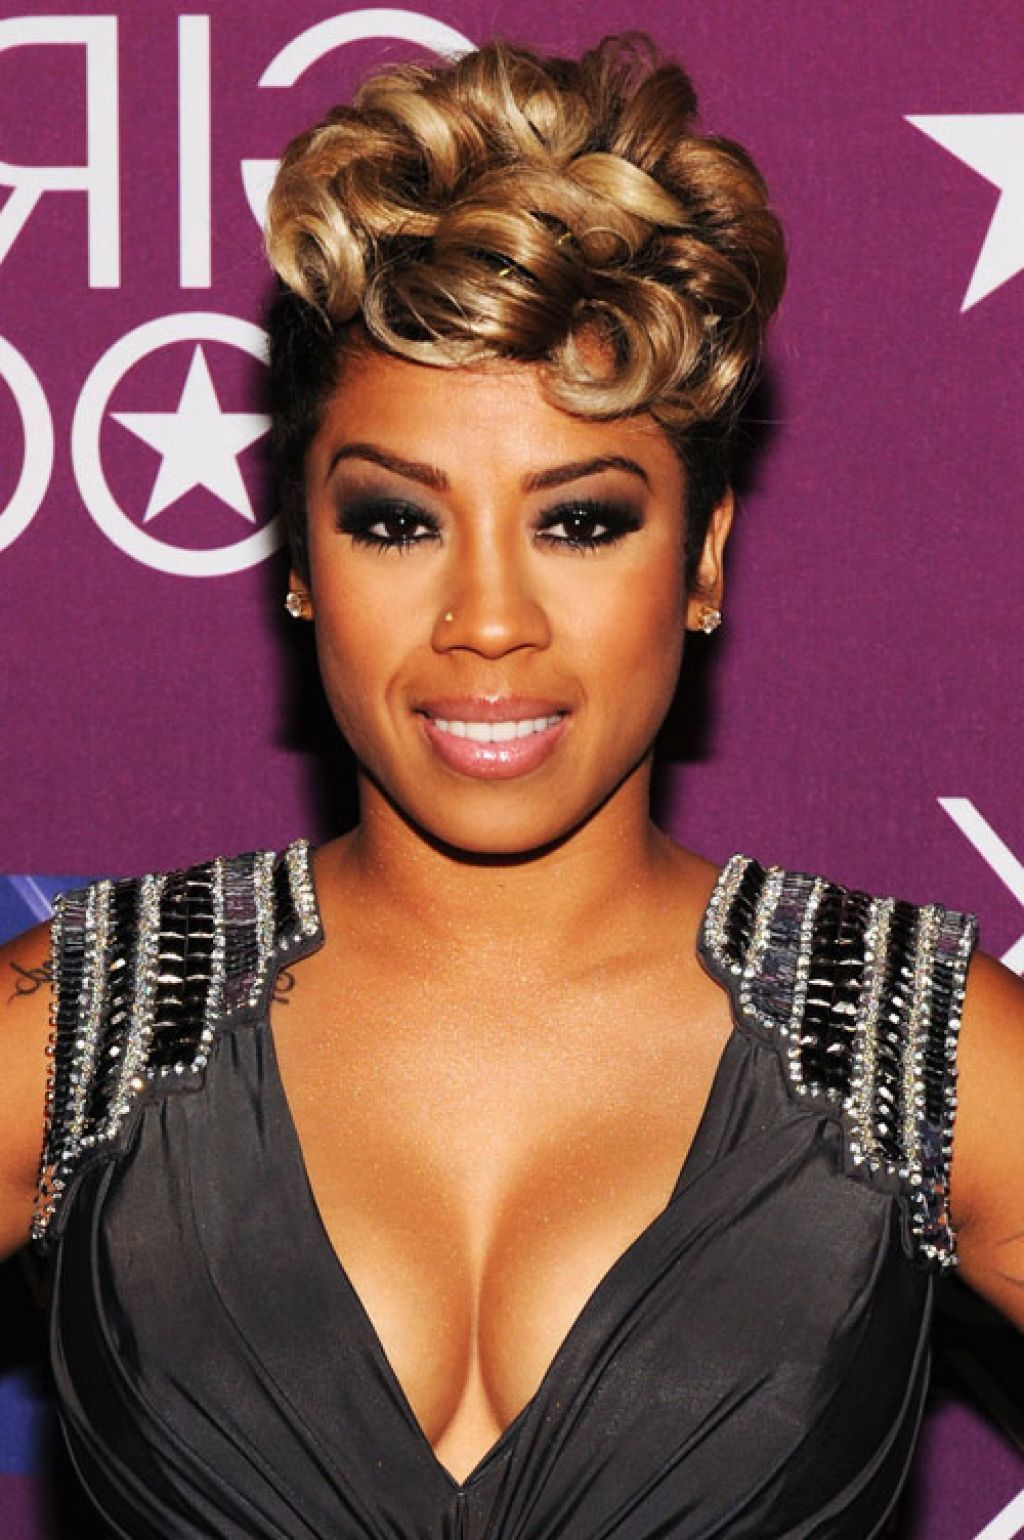 Keyshia Cole Hairstyles With Braids Keyshia Cole